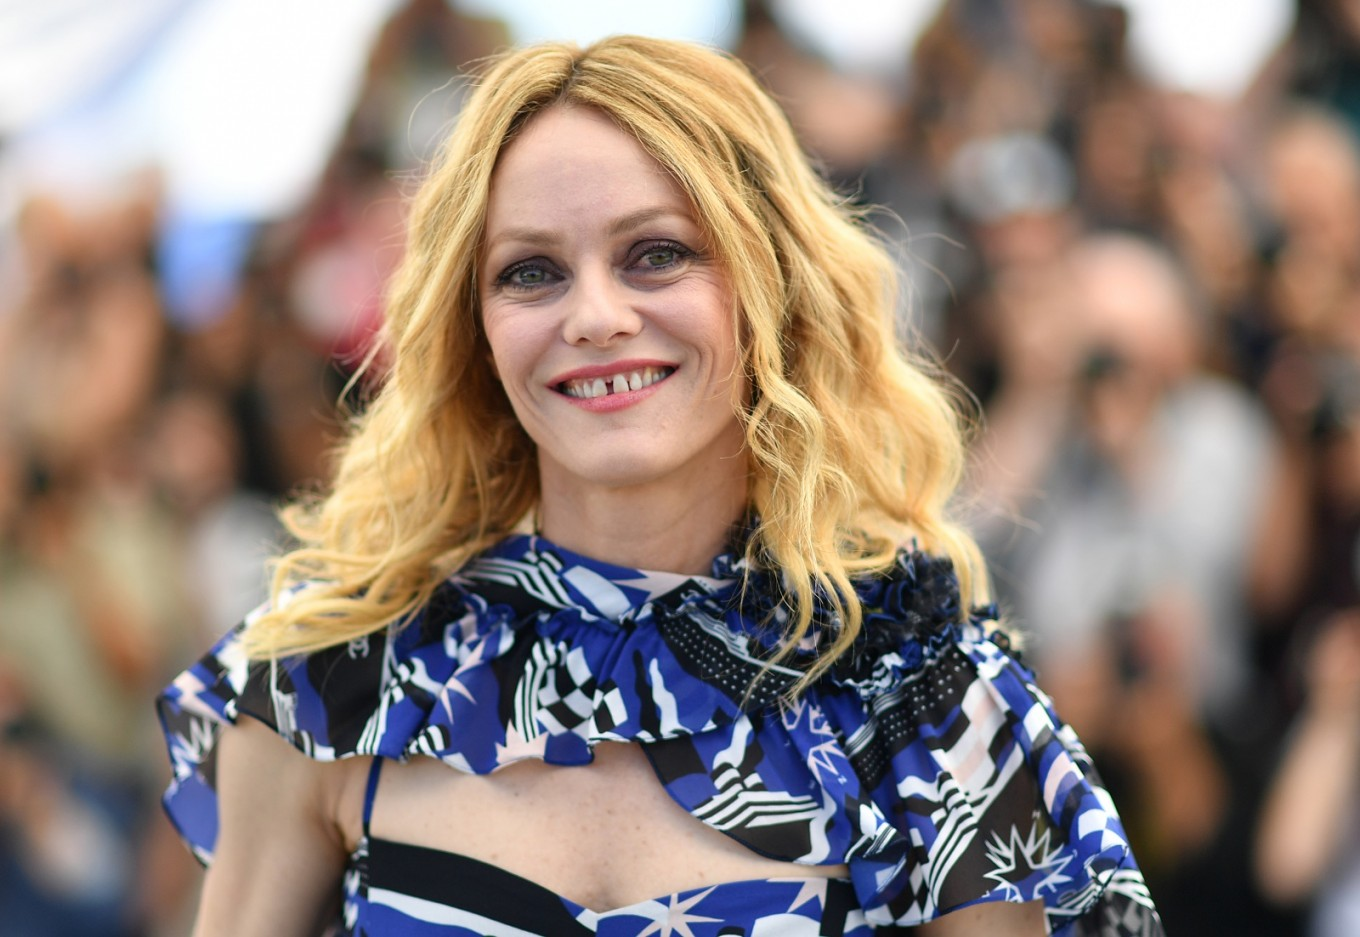 Actress Vanessa Paradis marries French director  Report     Actress Vanessa Paradis marries French director  Report